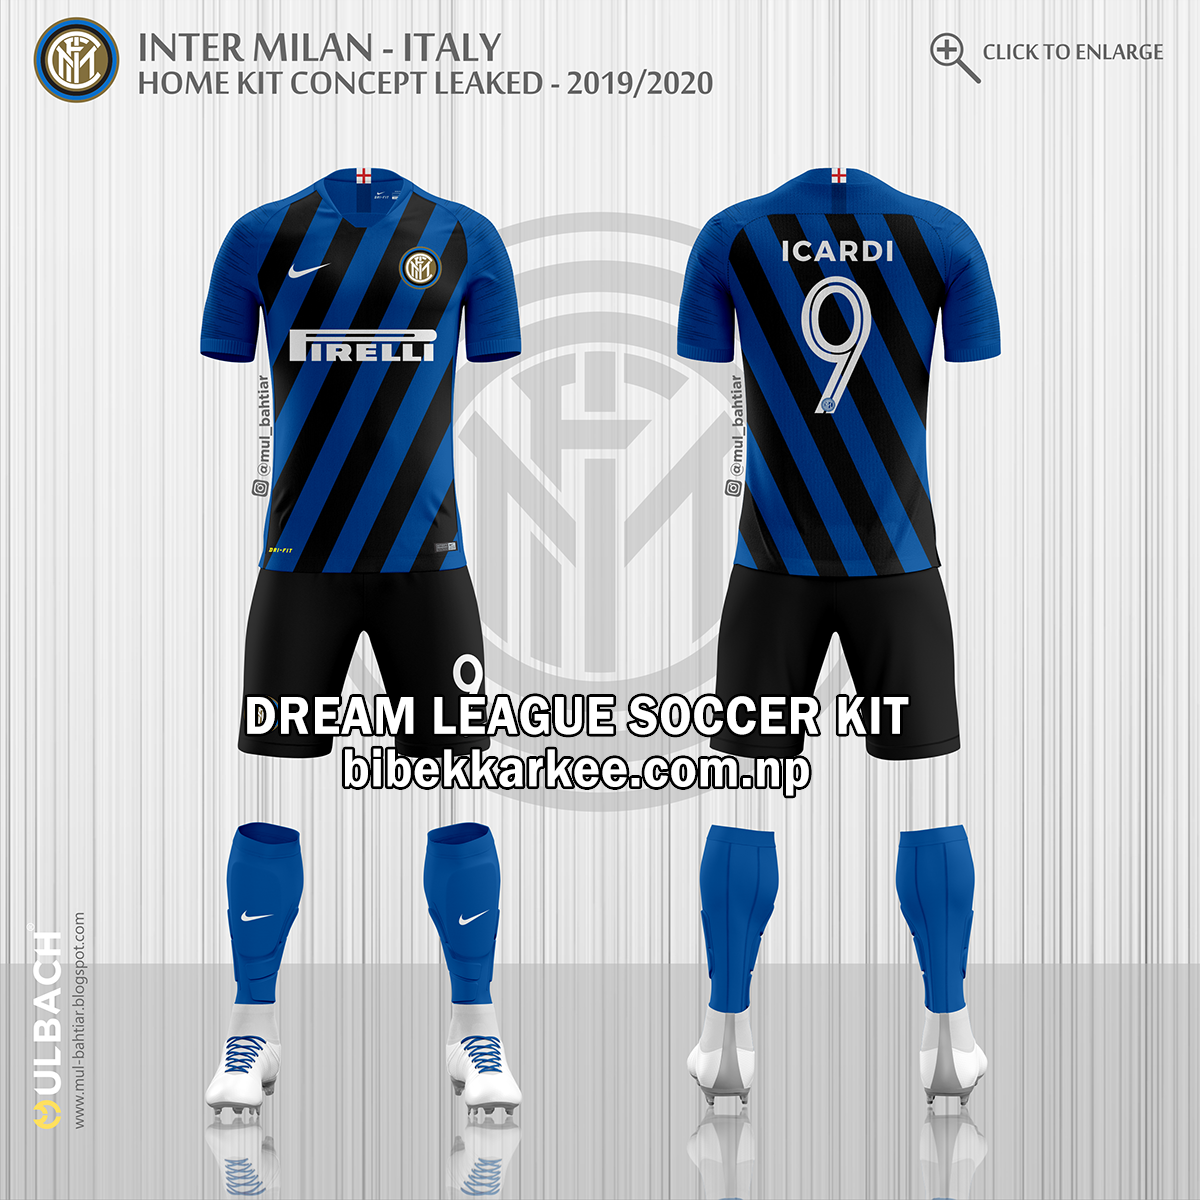 low priced 88a73 6ac22 Inter Milan Dream League Soccer Kit and Logo for 2019/2020 ...